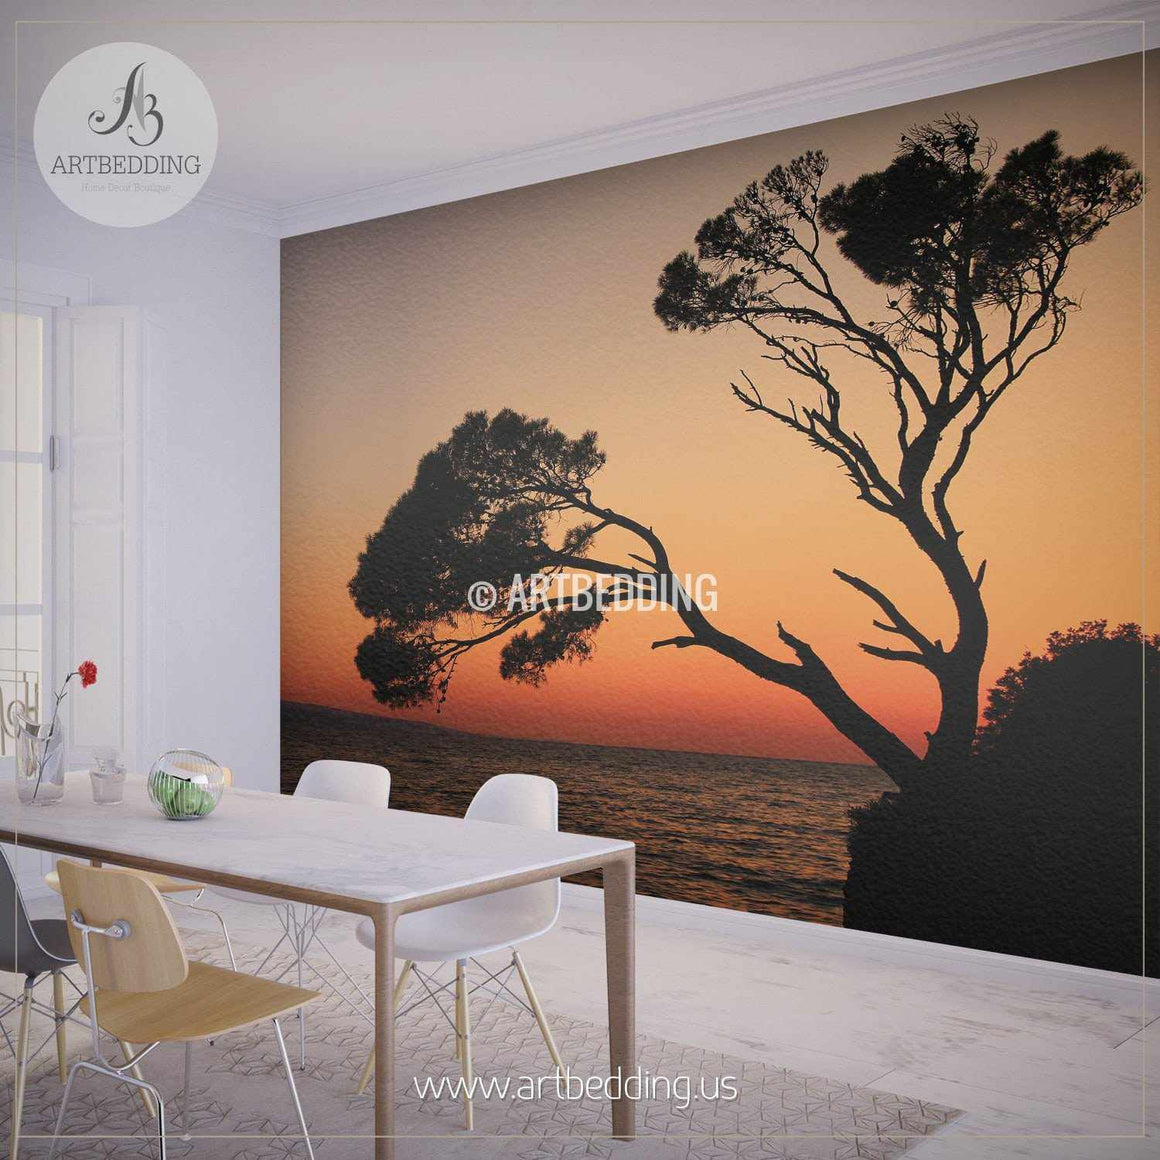 Sunset Tree Silhouettes Wall Mural, Self Adhesive Peel & Stick Photo Mural, Nature photo mural home decor wall mural